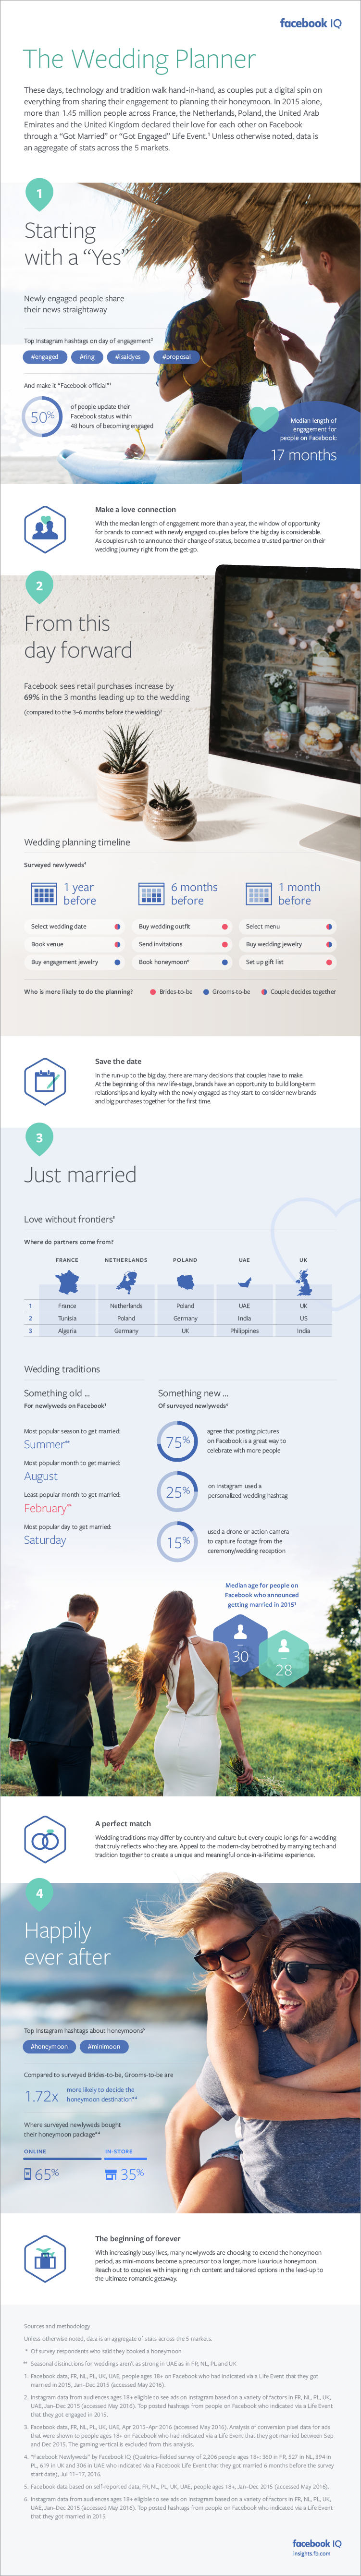 Facebook Releases New Data on How People Plan Their Weddings on Facebook and Instagram [Infographic] | Social Media Today